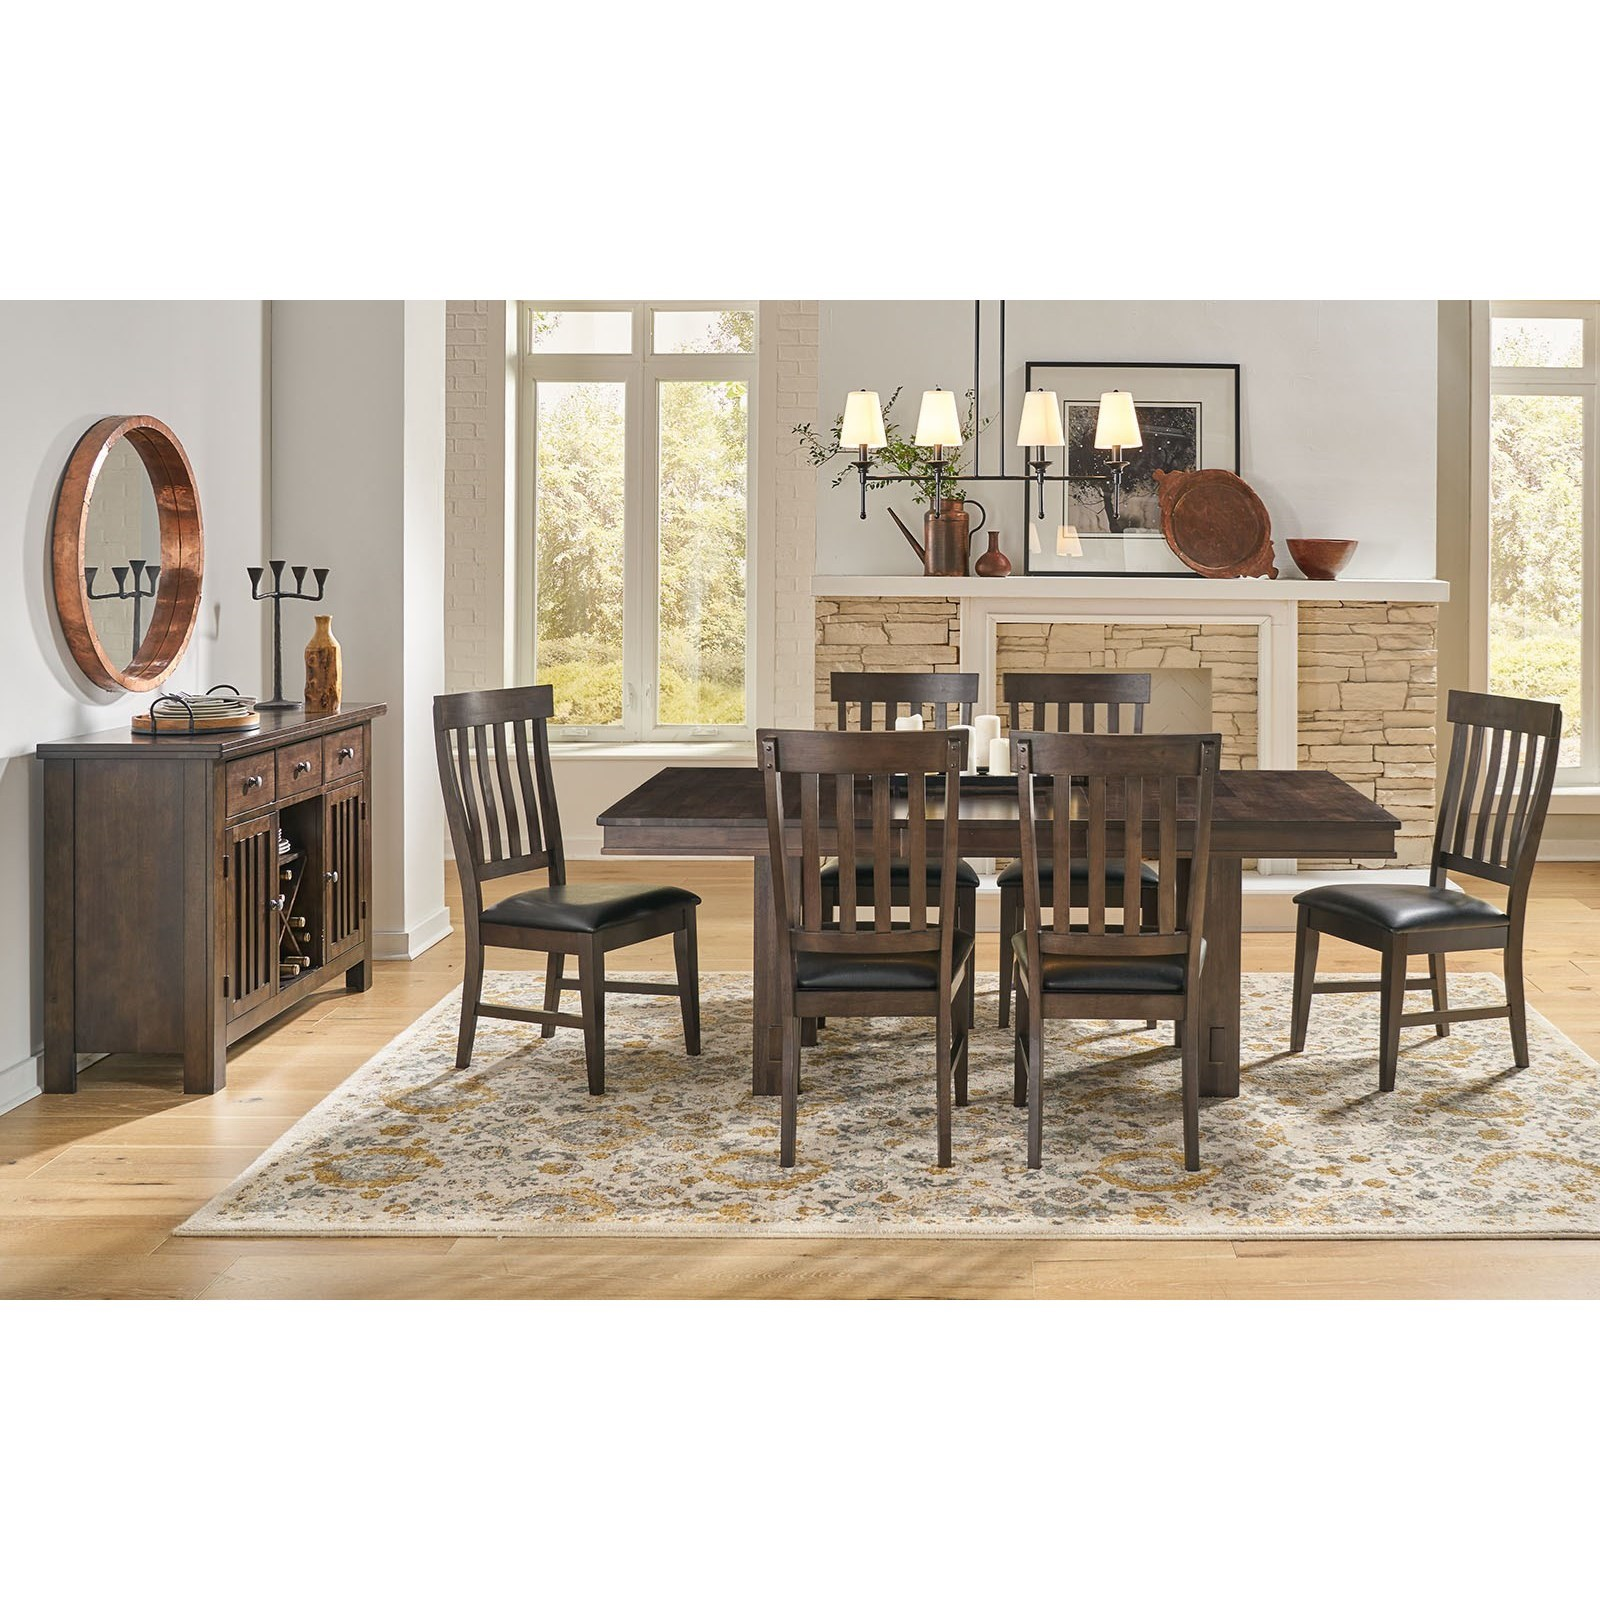 Bremerton 7-Piece Dining and Chair Set by AAmerica at Zak's Home